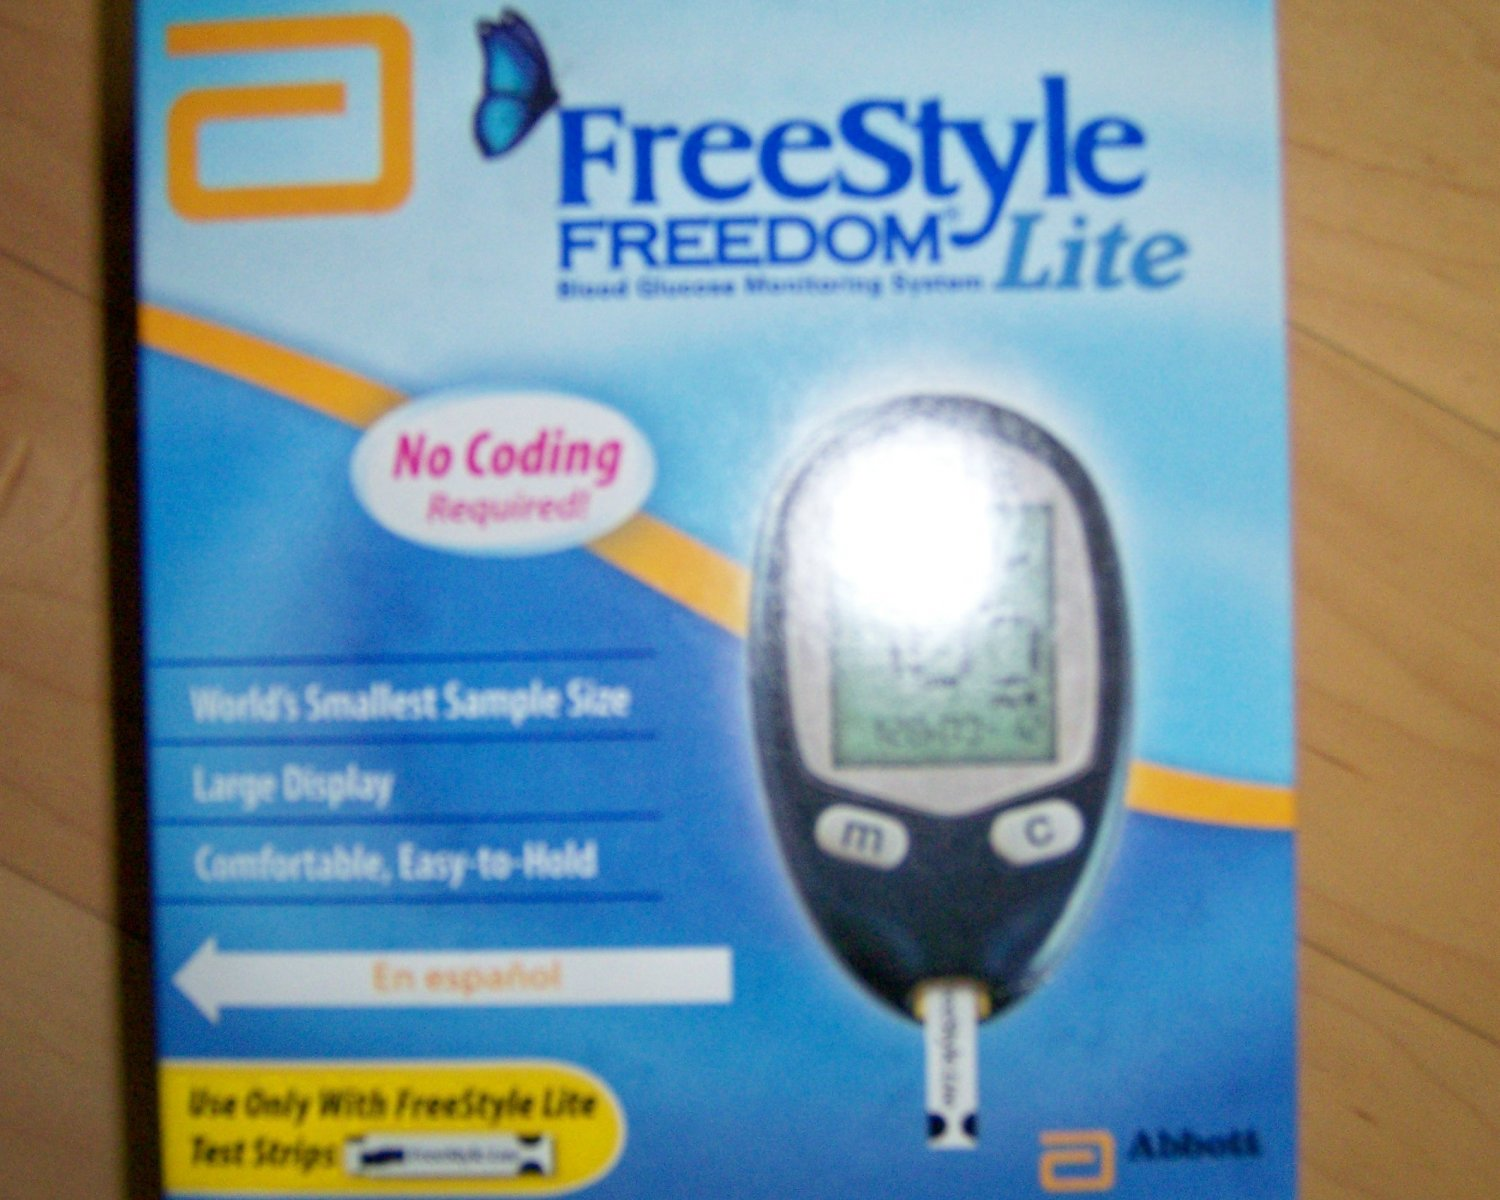 Blood Glucose Monitering Life System No Coding BNK980